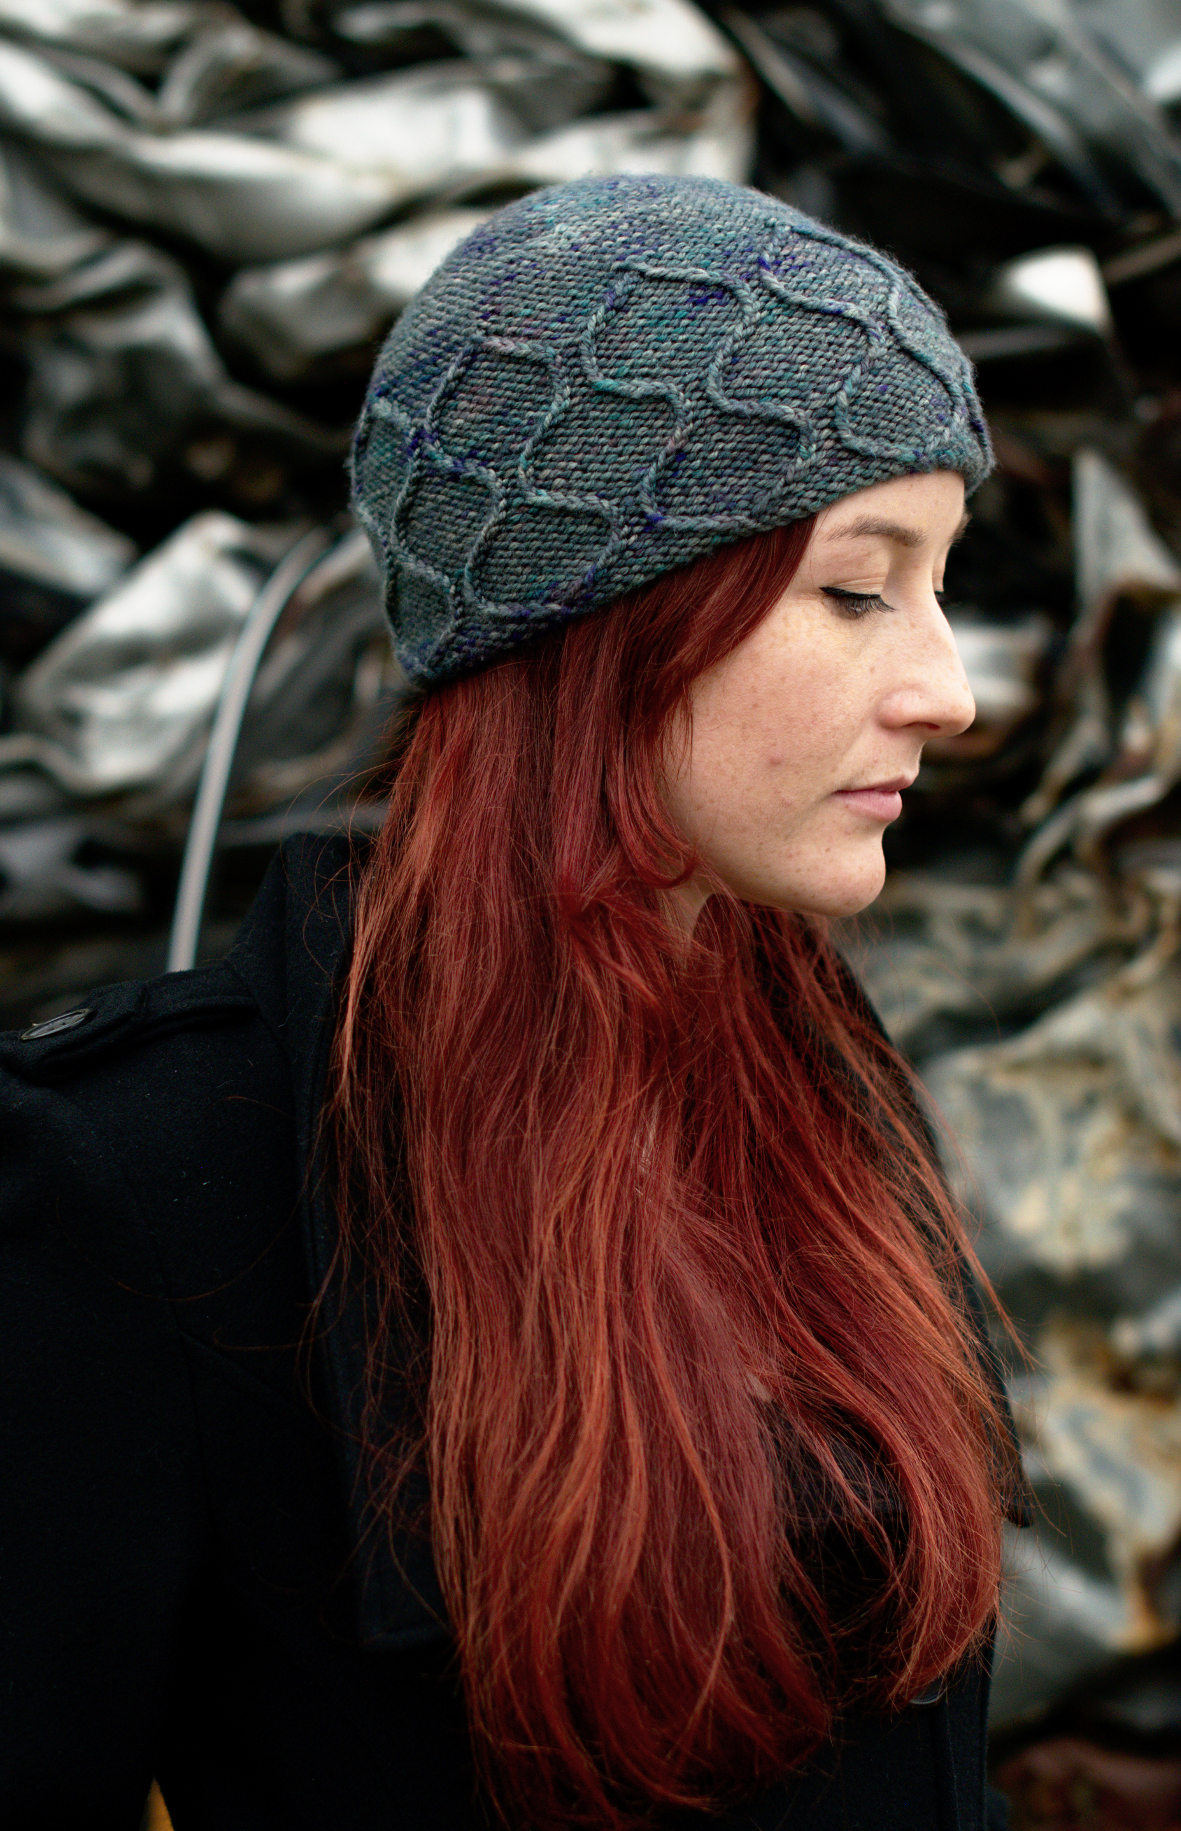 Filigree Beanie hand knitting hat pattern for worsted weight yarns